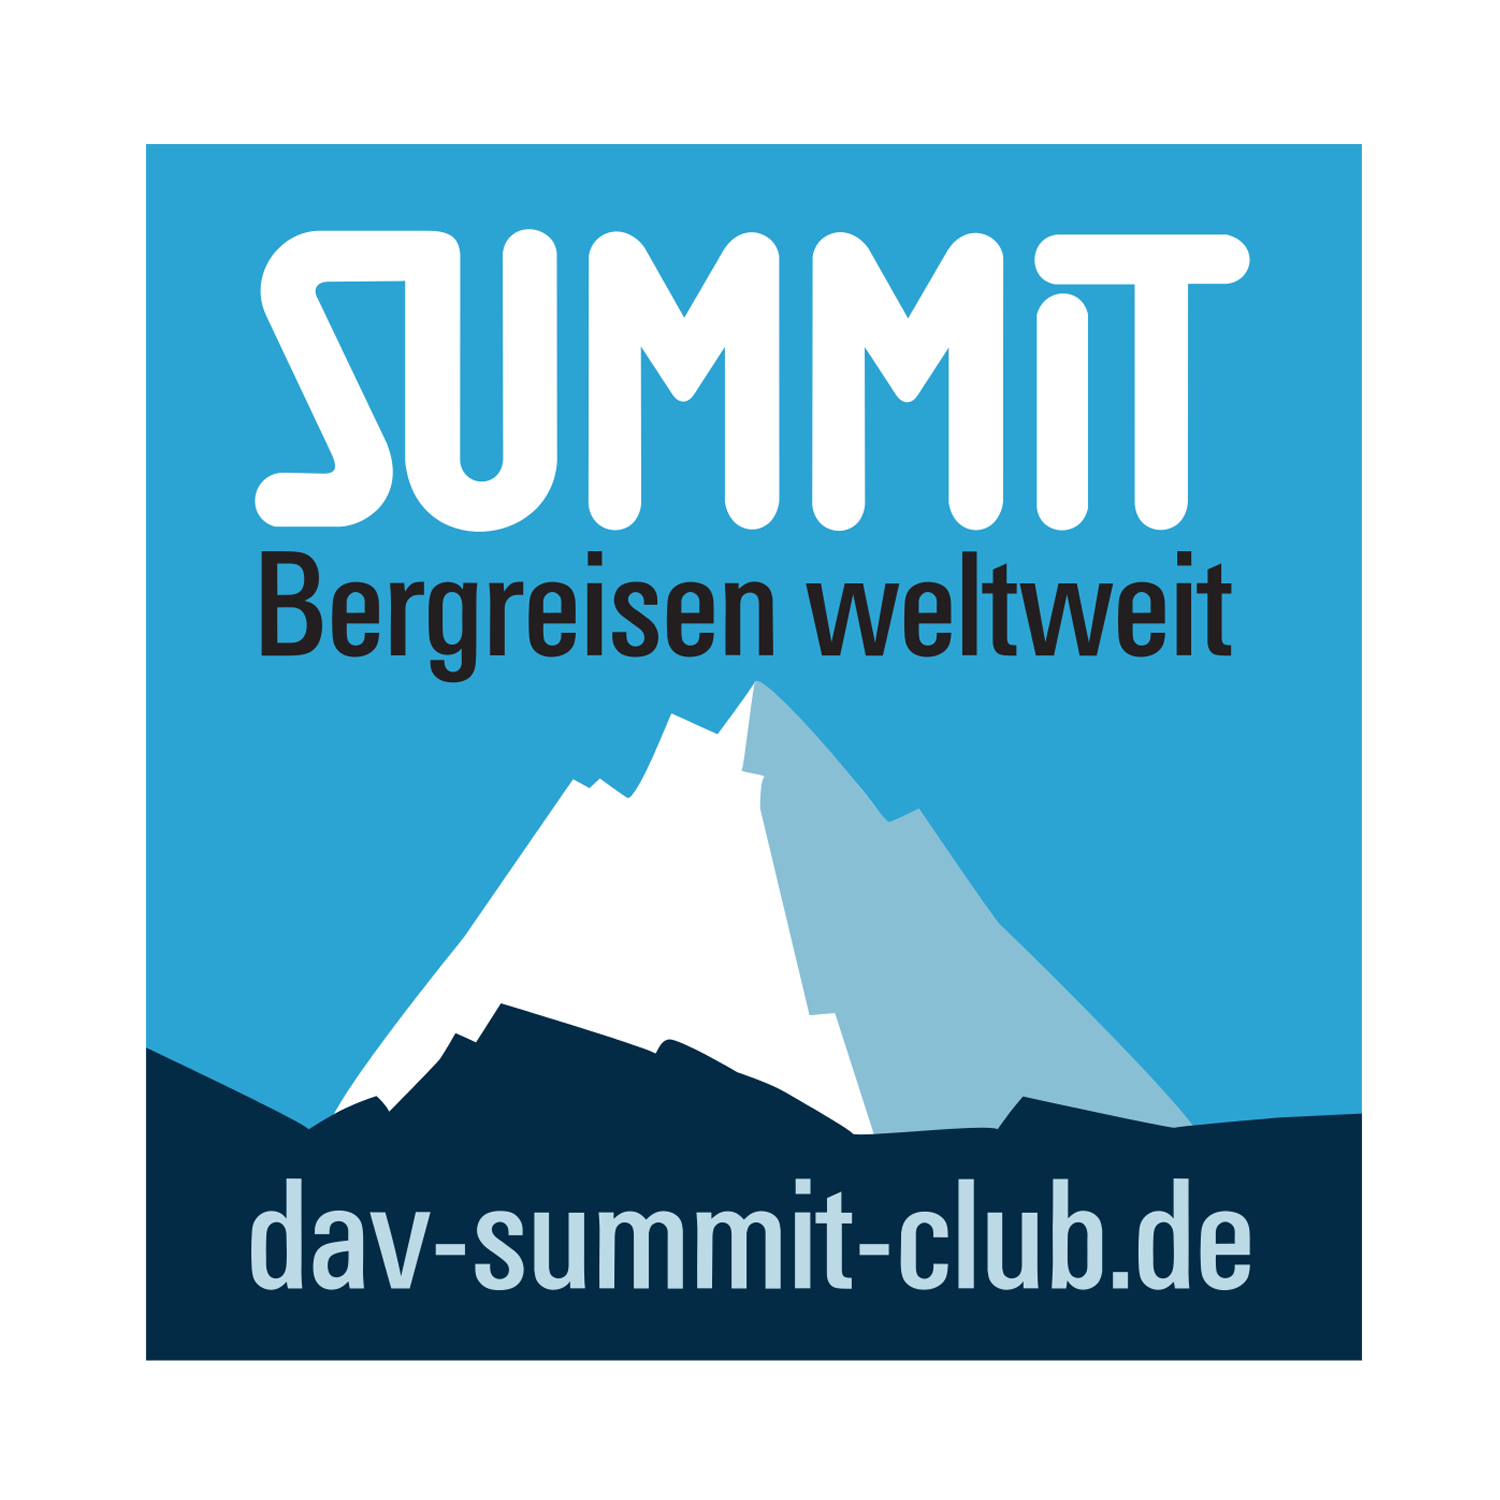 Deutscher Alpenverein, DAV, Wanderreisen, Wanderurlaub, Summit Club